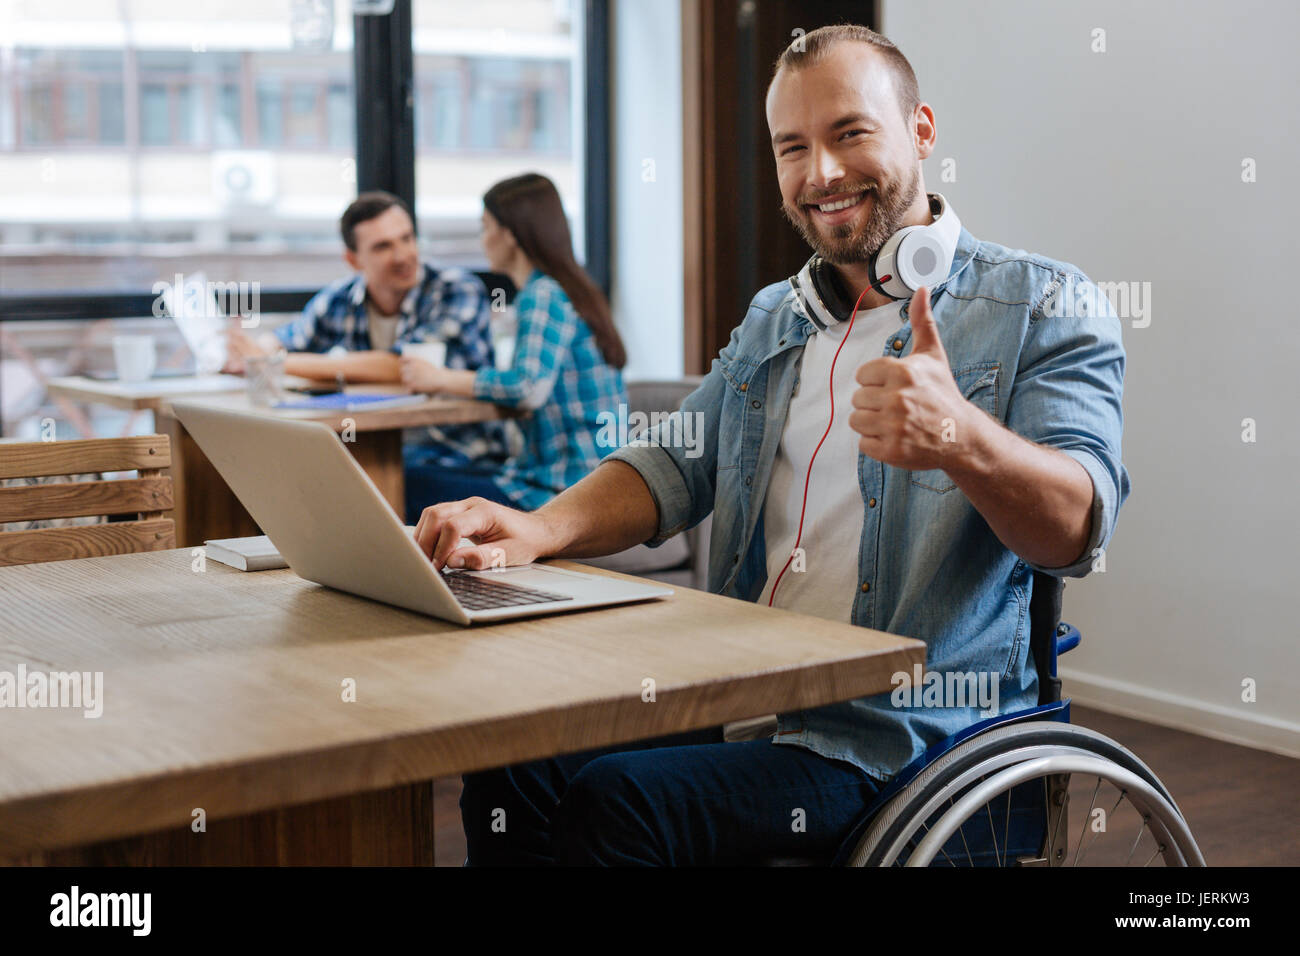 Intrigued productive student visiting new workspace - Stock Image